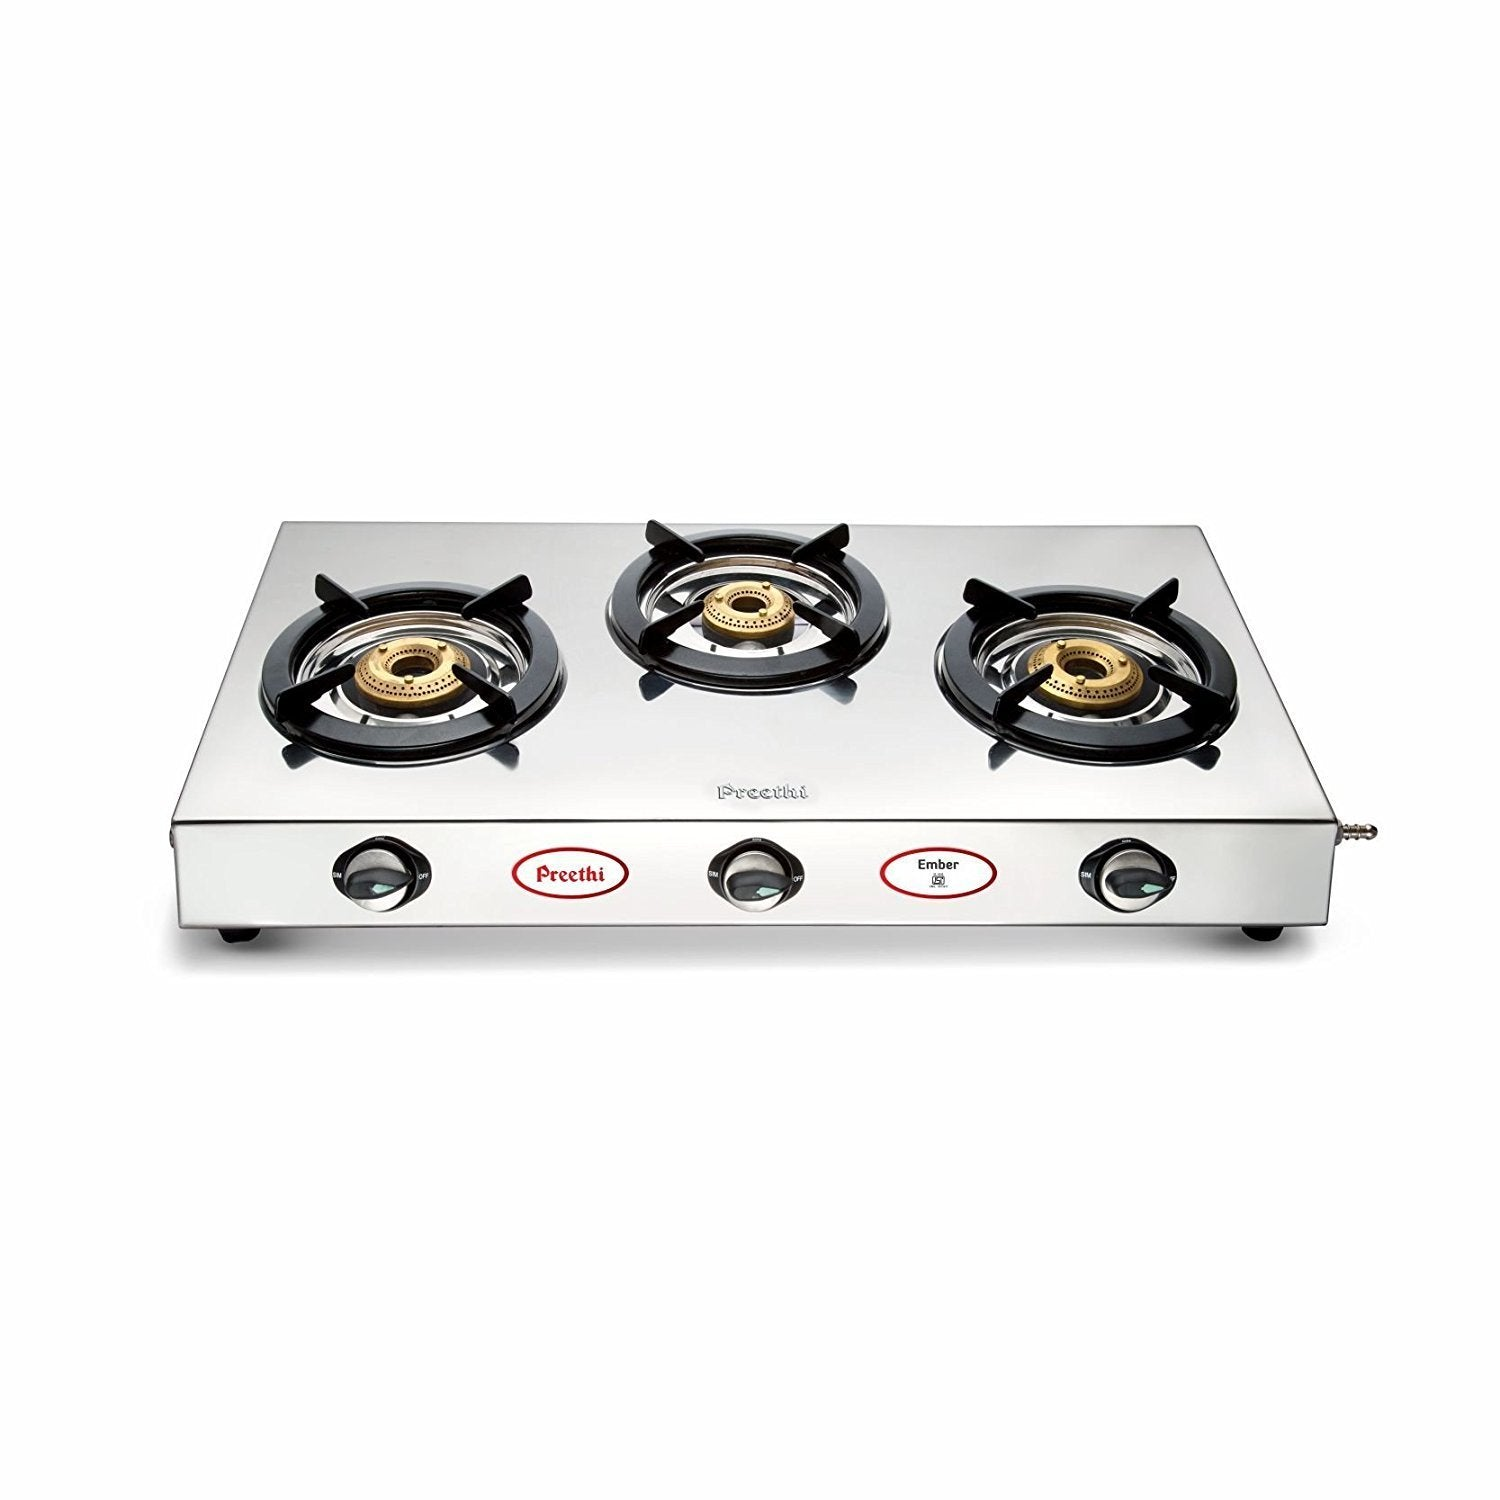 Preethi Ember Stainless Steel 3-Burner Gas Stove get best offers deals free and coupons online at buythevalue.in